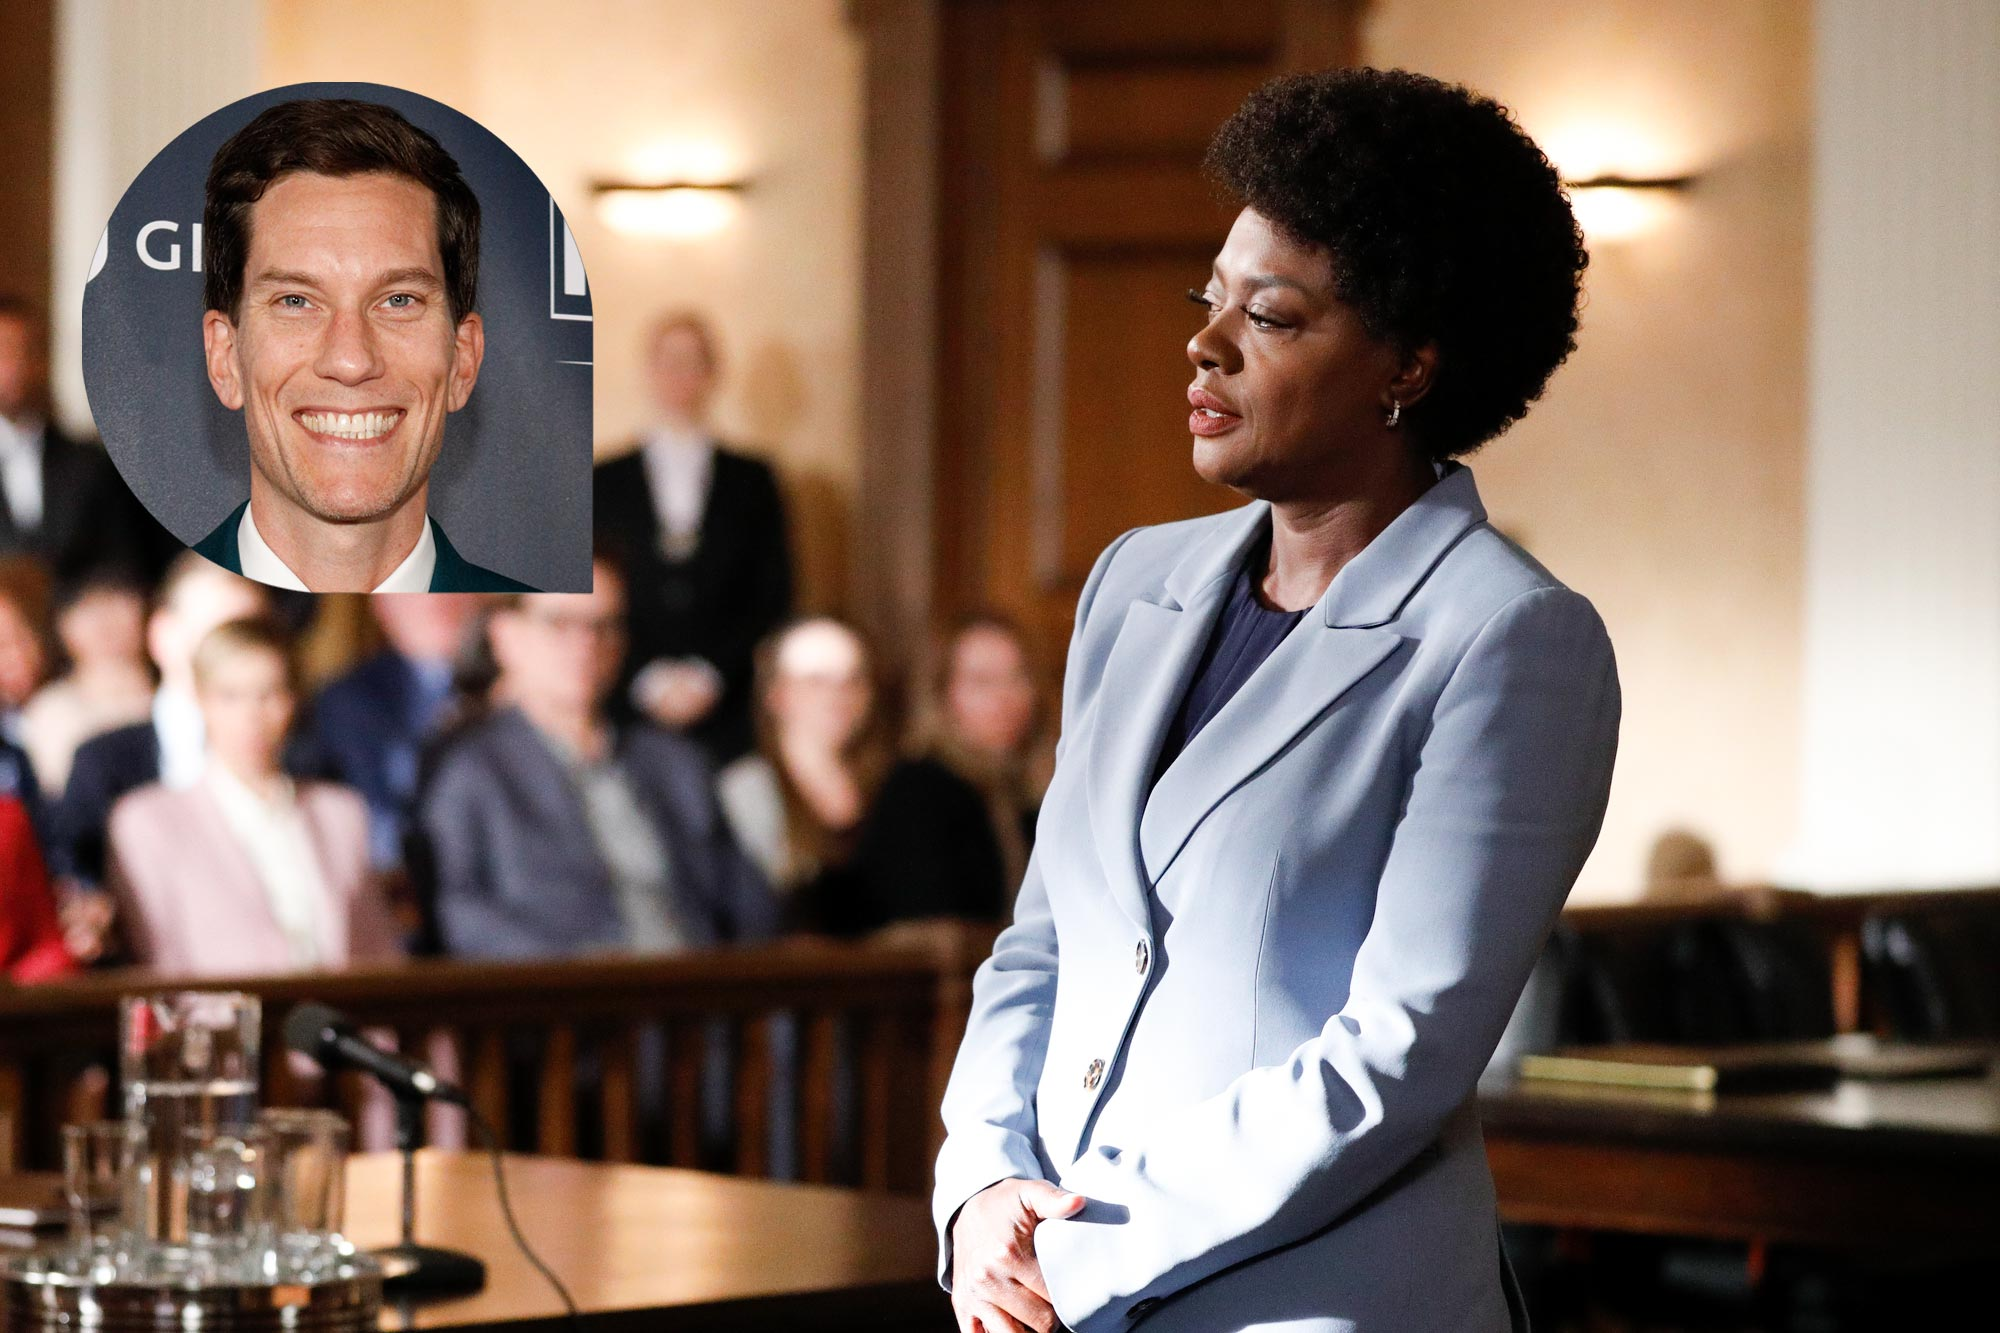 HOW TO GET AWAY WITH MURDER, Pete Nowalk